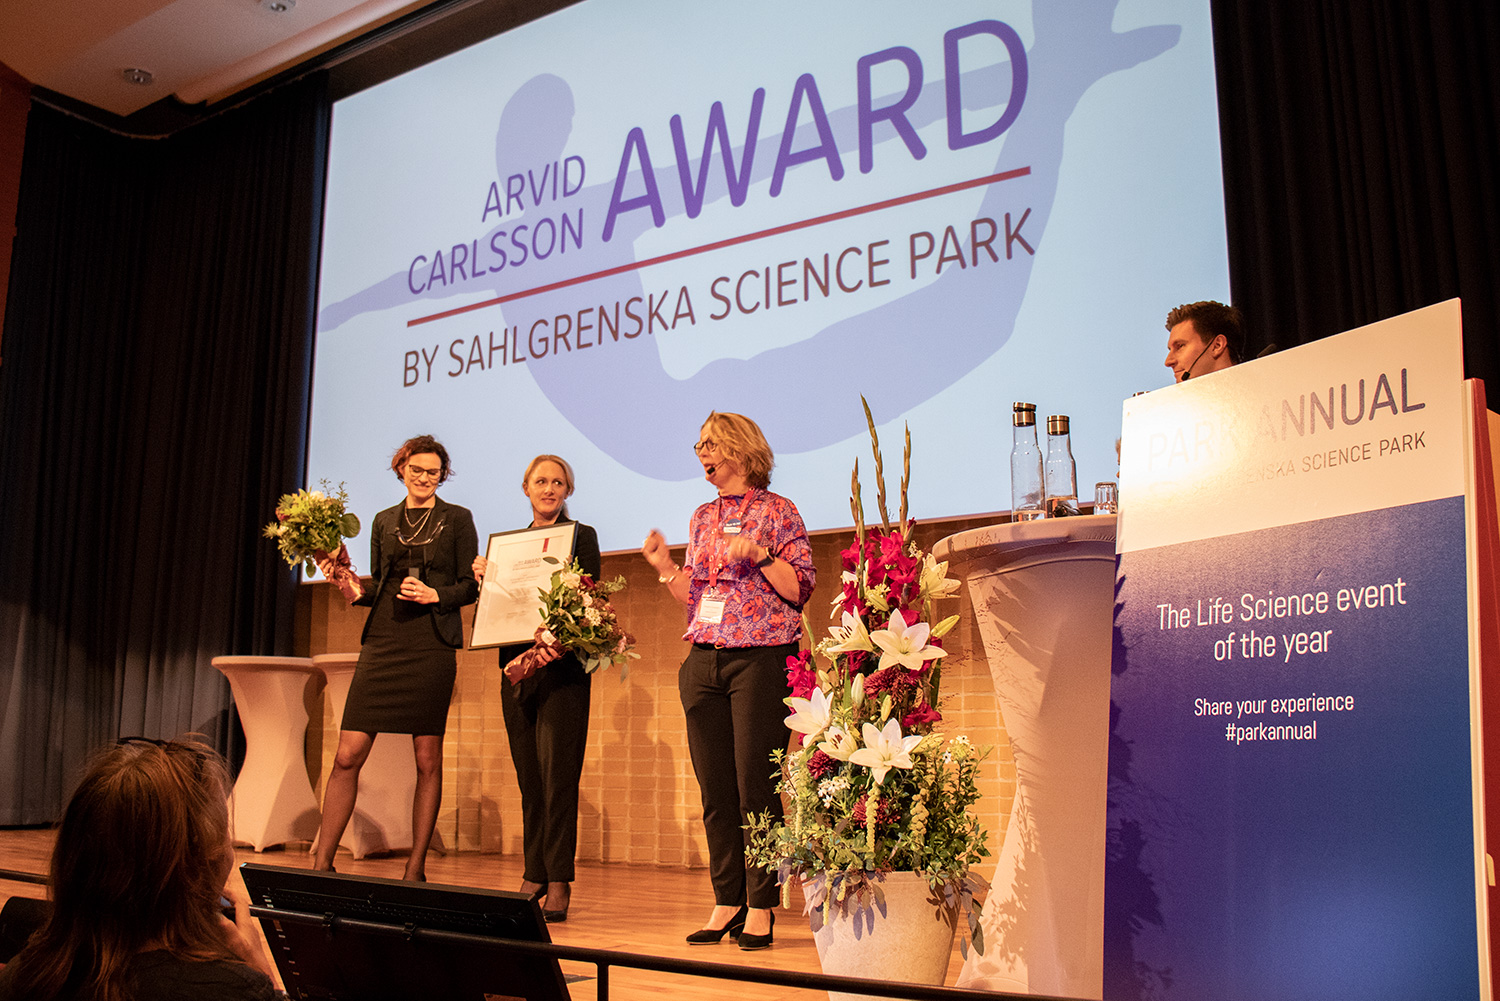 The founders Kristina Lagerstedt and Susanne Staaf on stage to recieve the award.